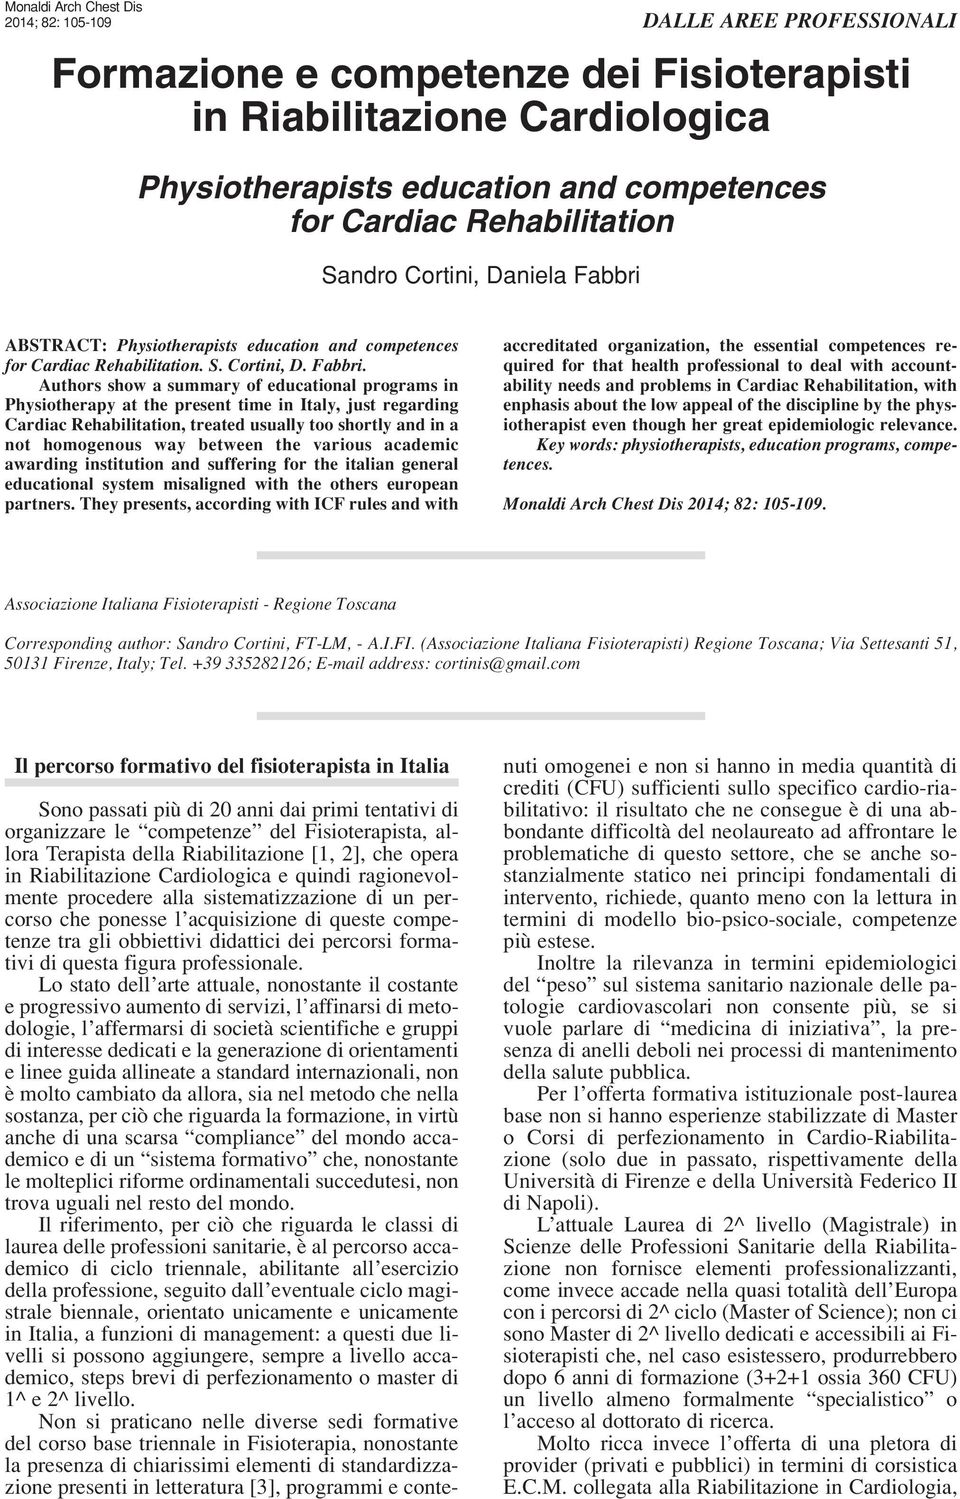 ABSTRACT: Physiotherapists education and competences for Cardiac Rehabilitation. S. Cortini, D. Fabbri.